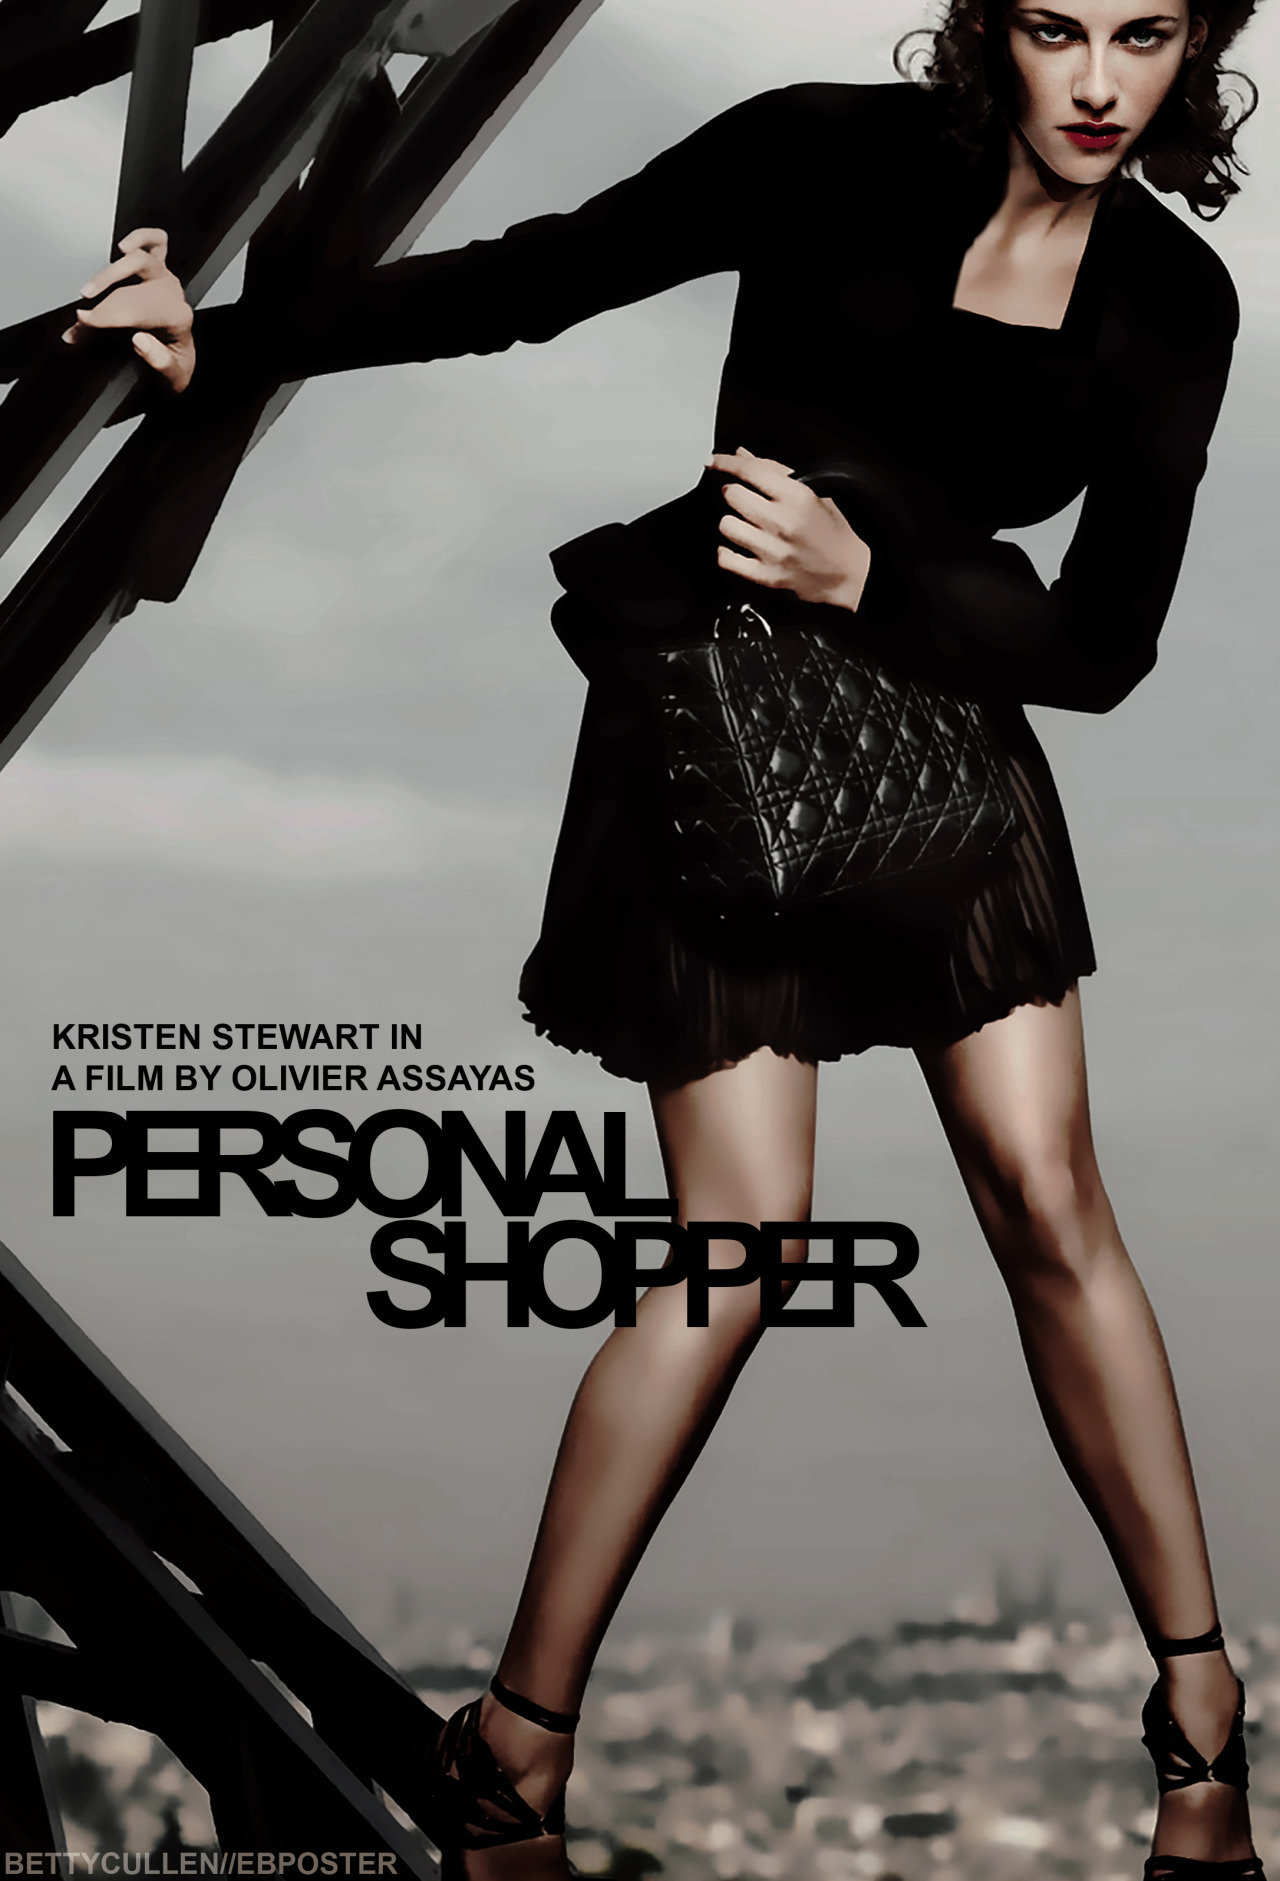 Kristen-Personal-Shopper-movie-kristen-stewart-38991792-1280-1881